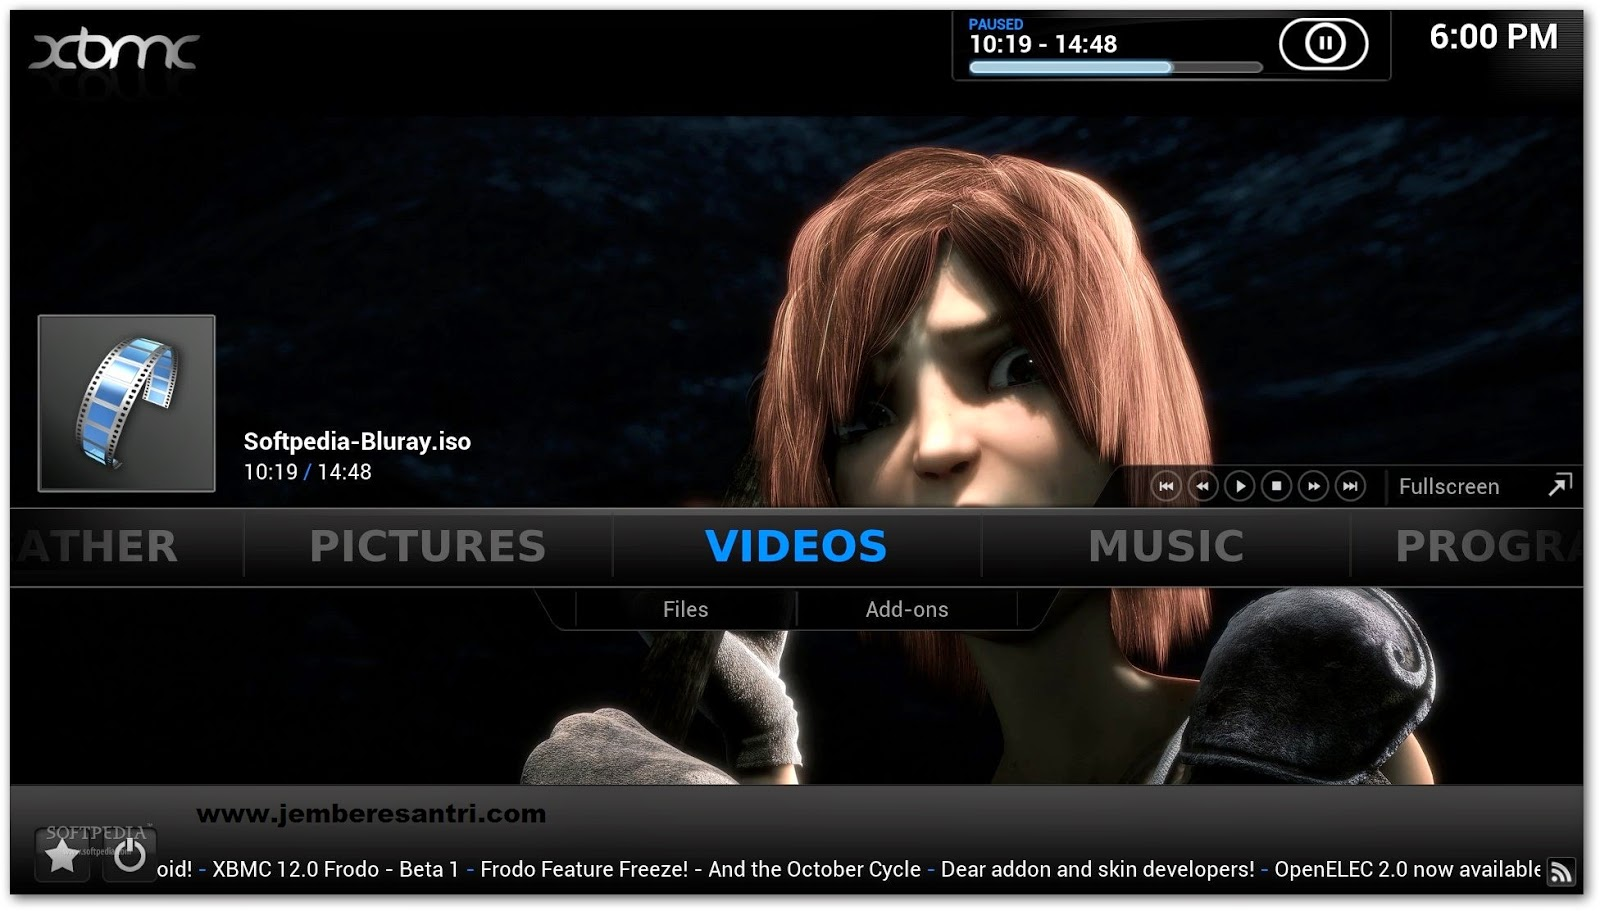 Download FREE XBMC Media Center 13.0 Beta 4 Terbaru 2014